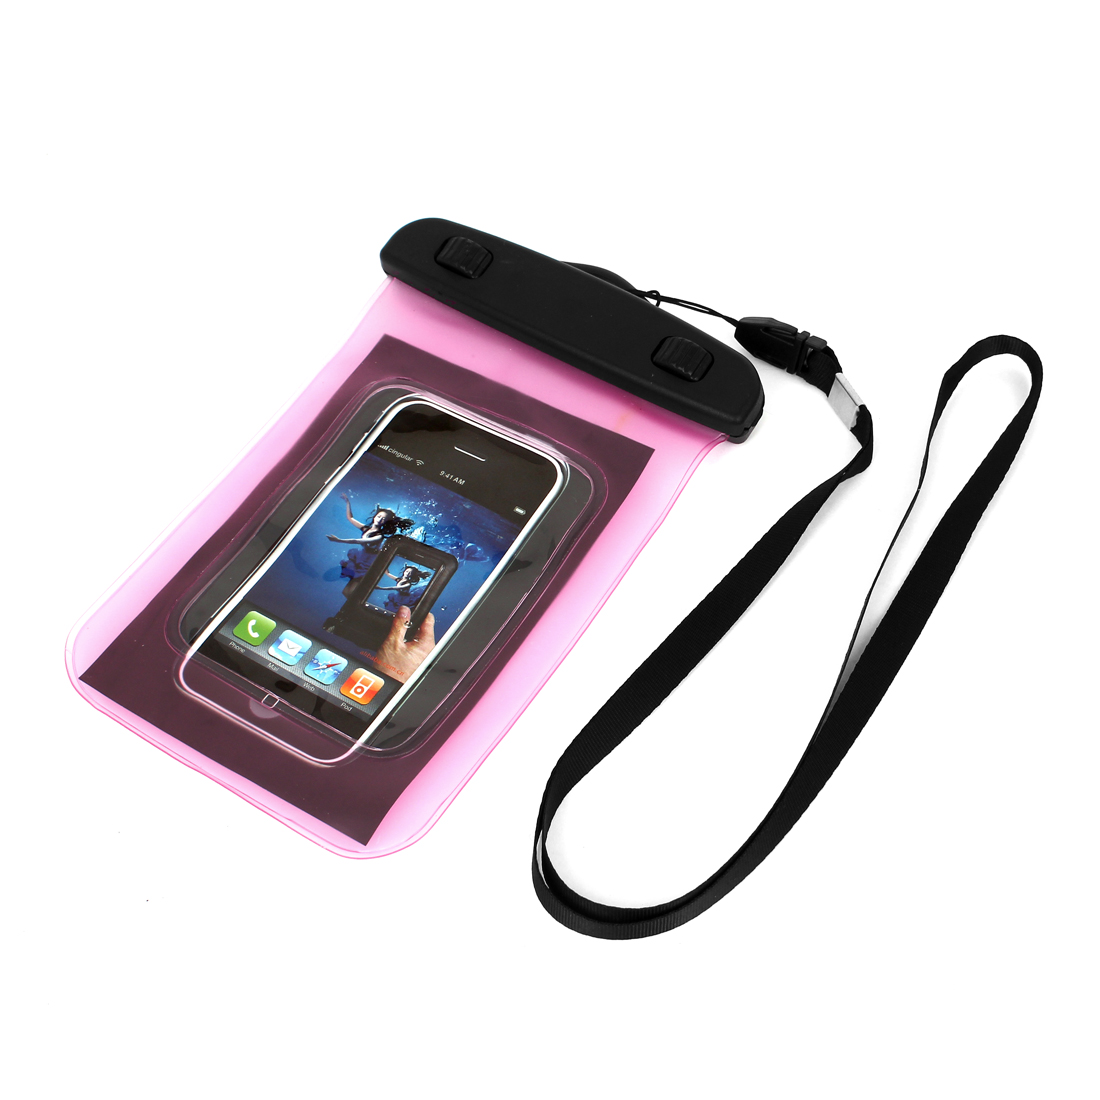 "Waterproof Case Dry Bag Protector Pouch Pink + Strap for 4"" Mobile Phone"